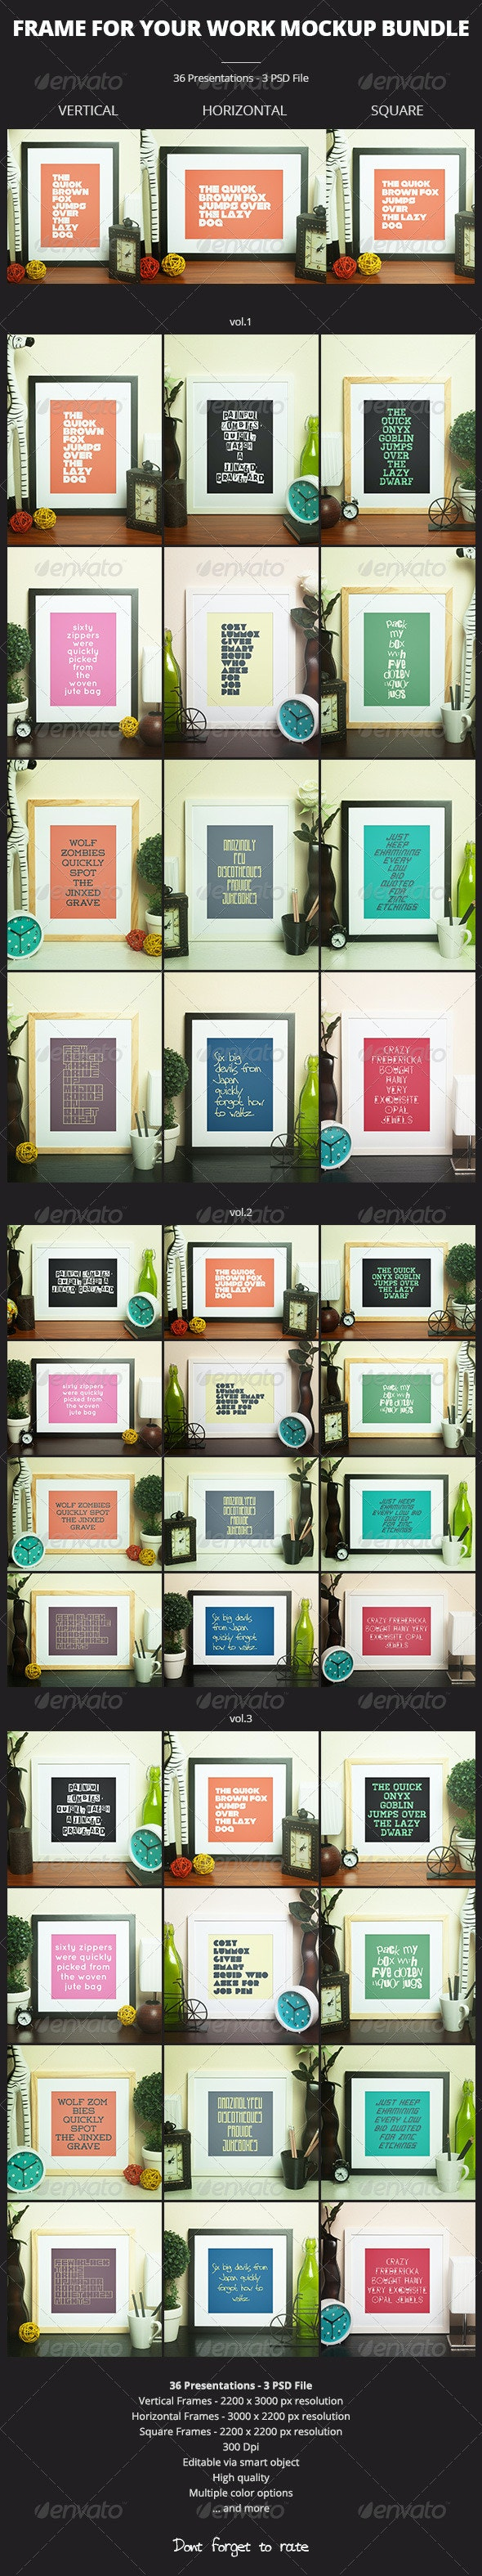 Frame For Your Work Mockup Bundle - Print Product Mock-Ups